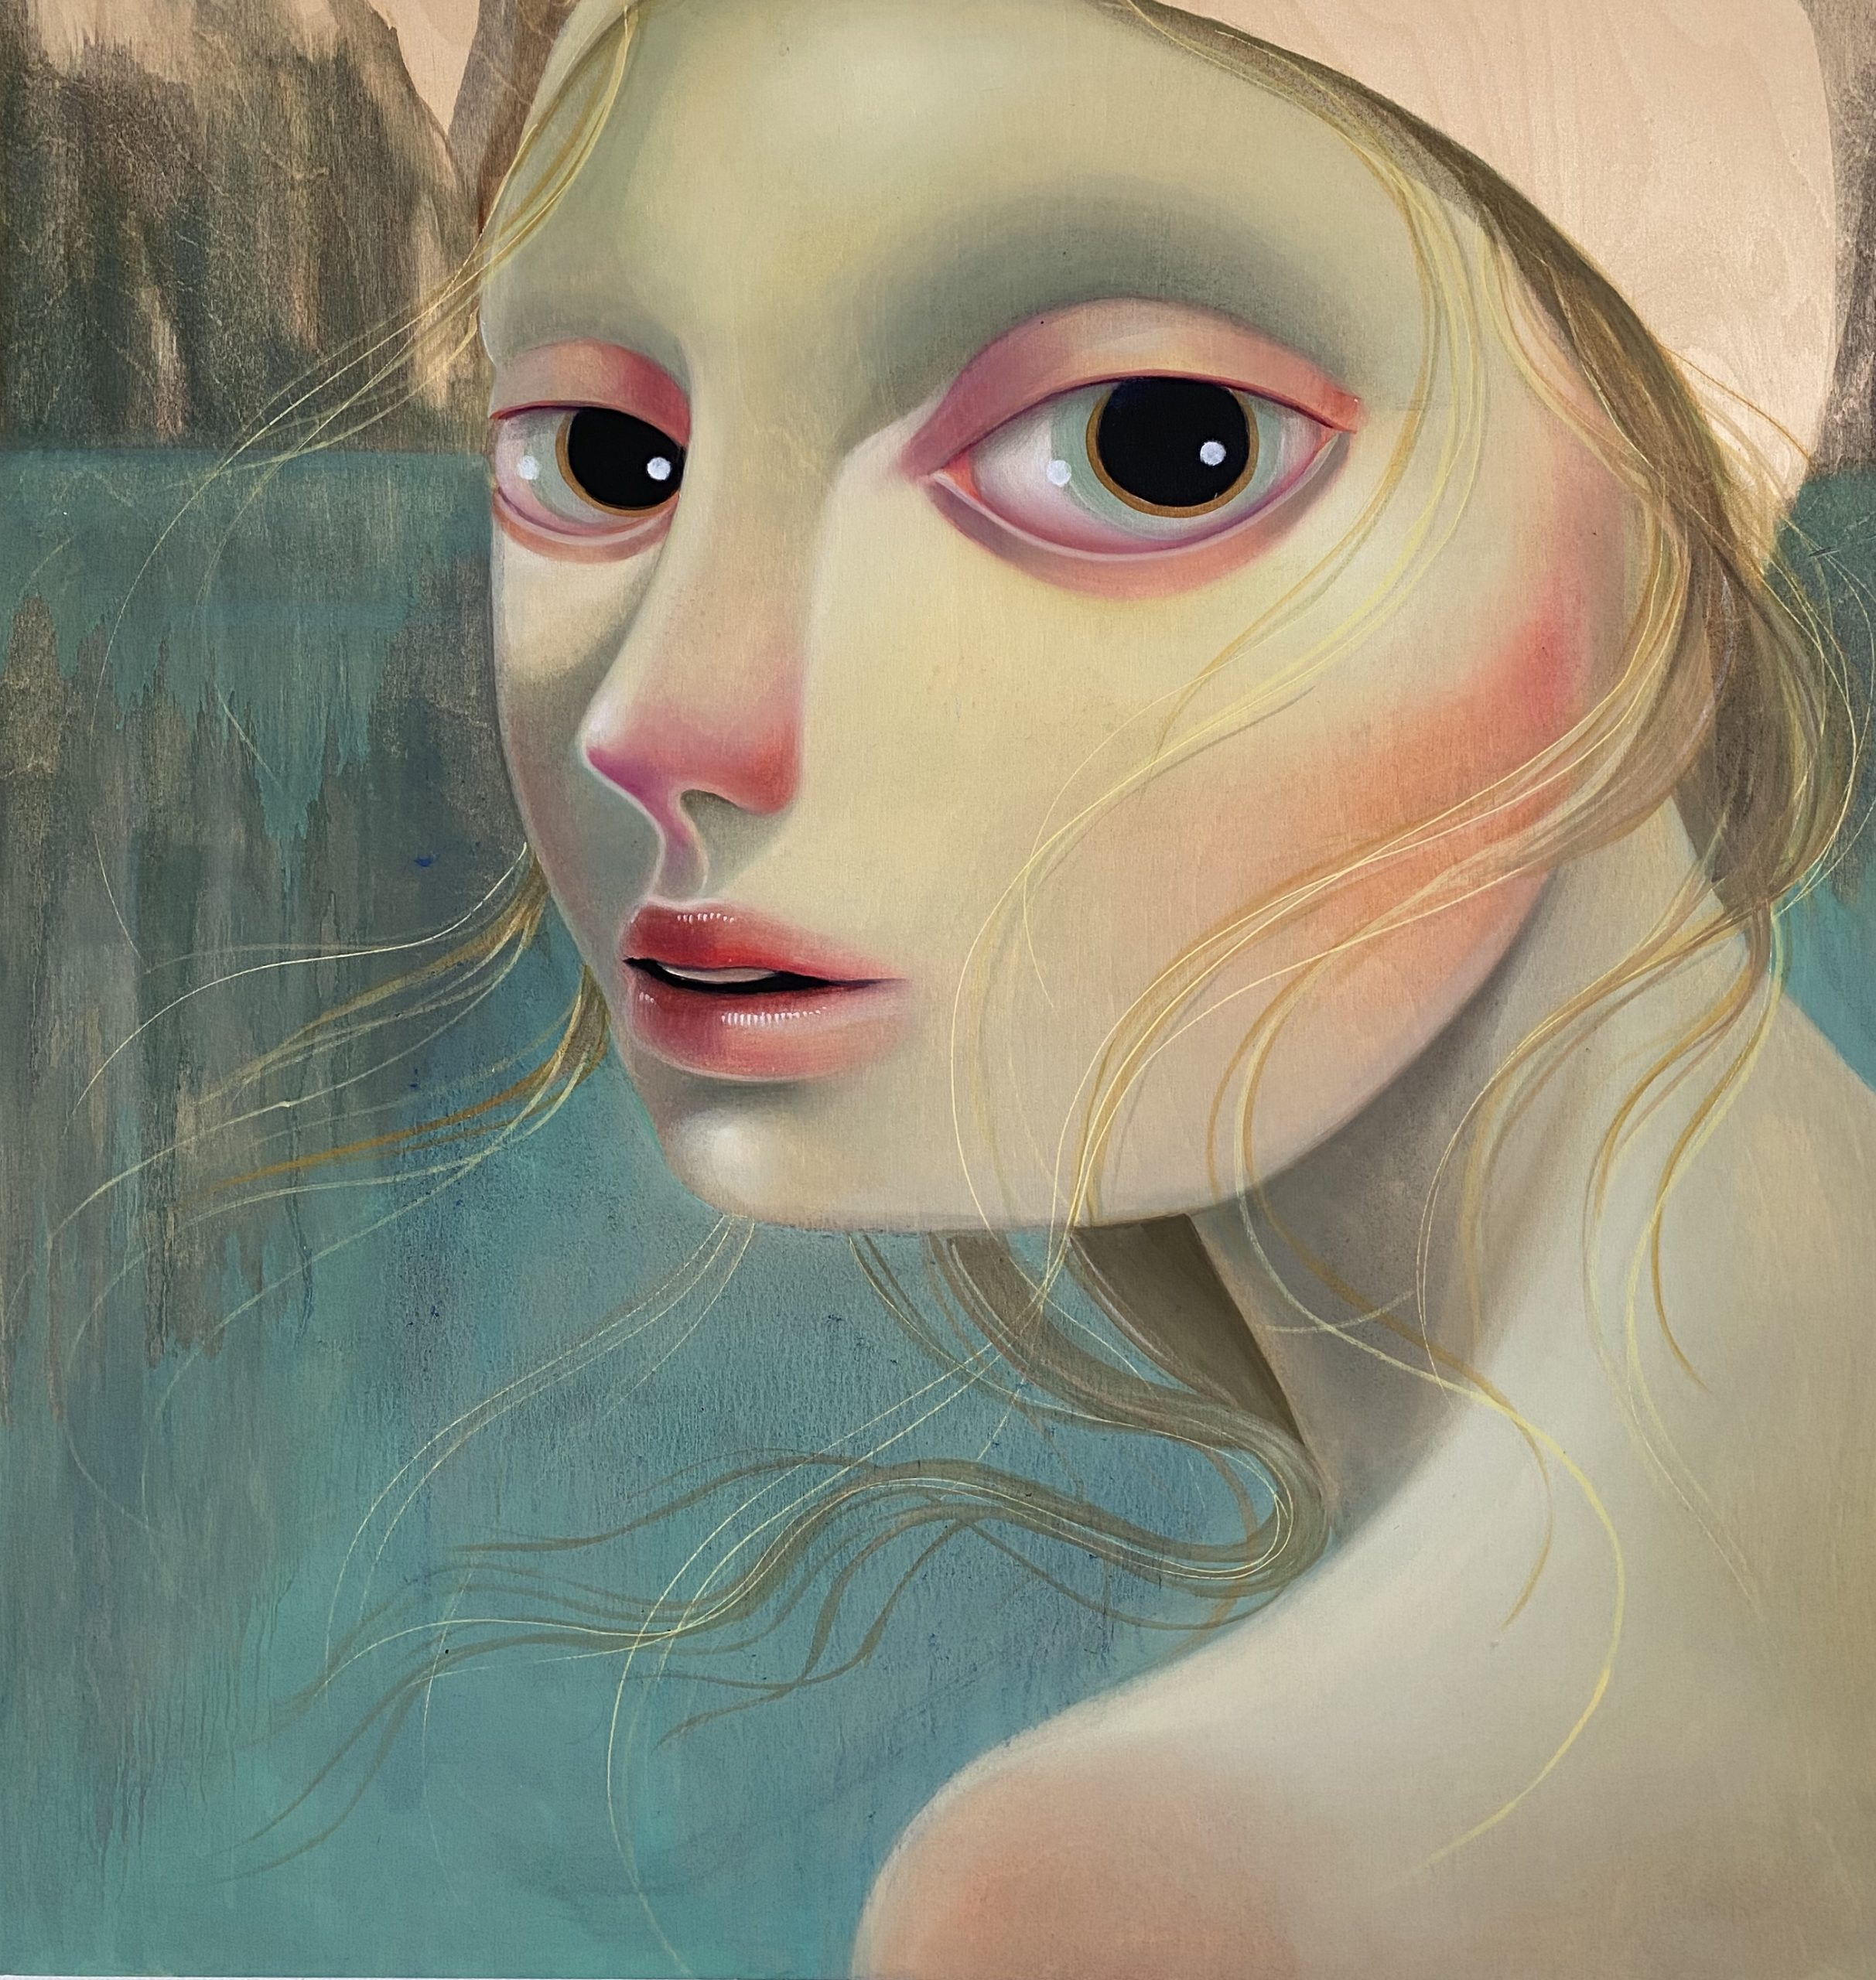 There In The Deep She Could Not Be Reached by Tania Marmolejo